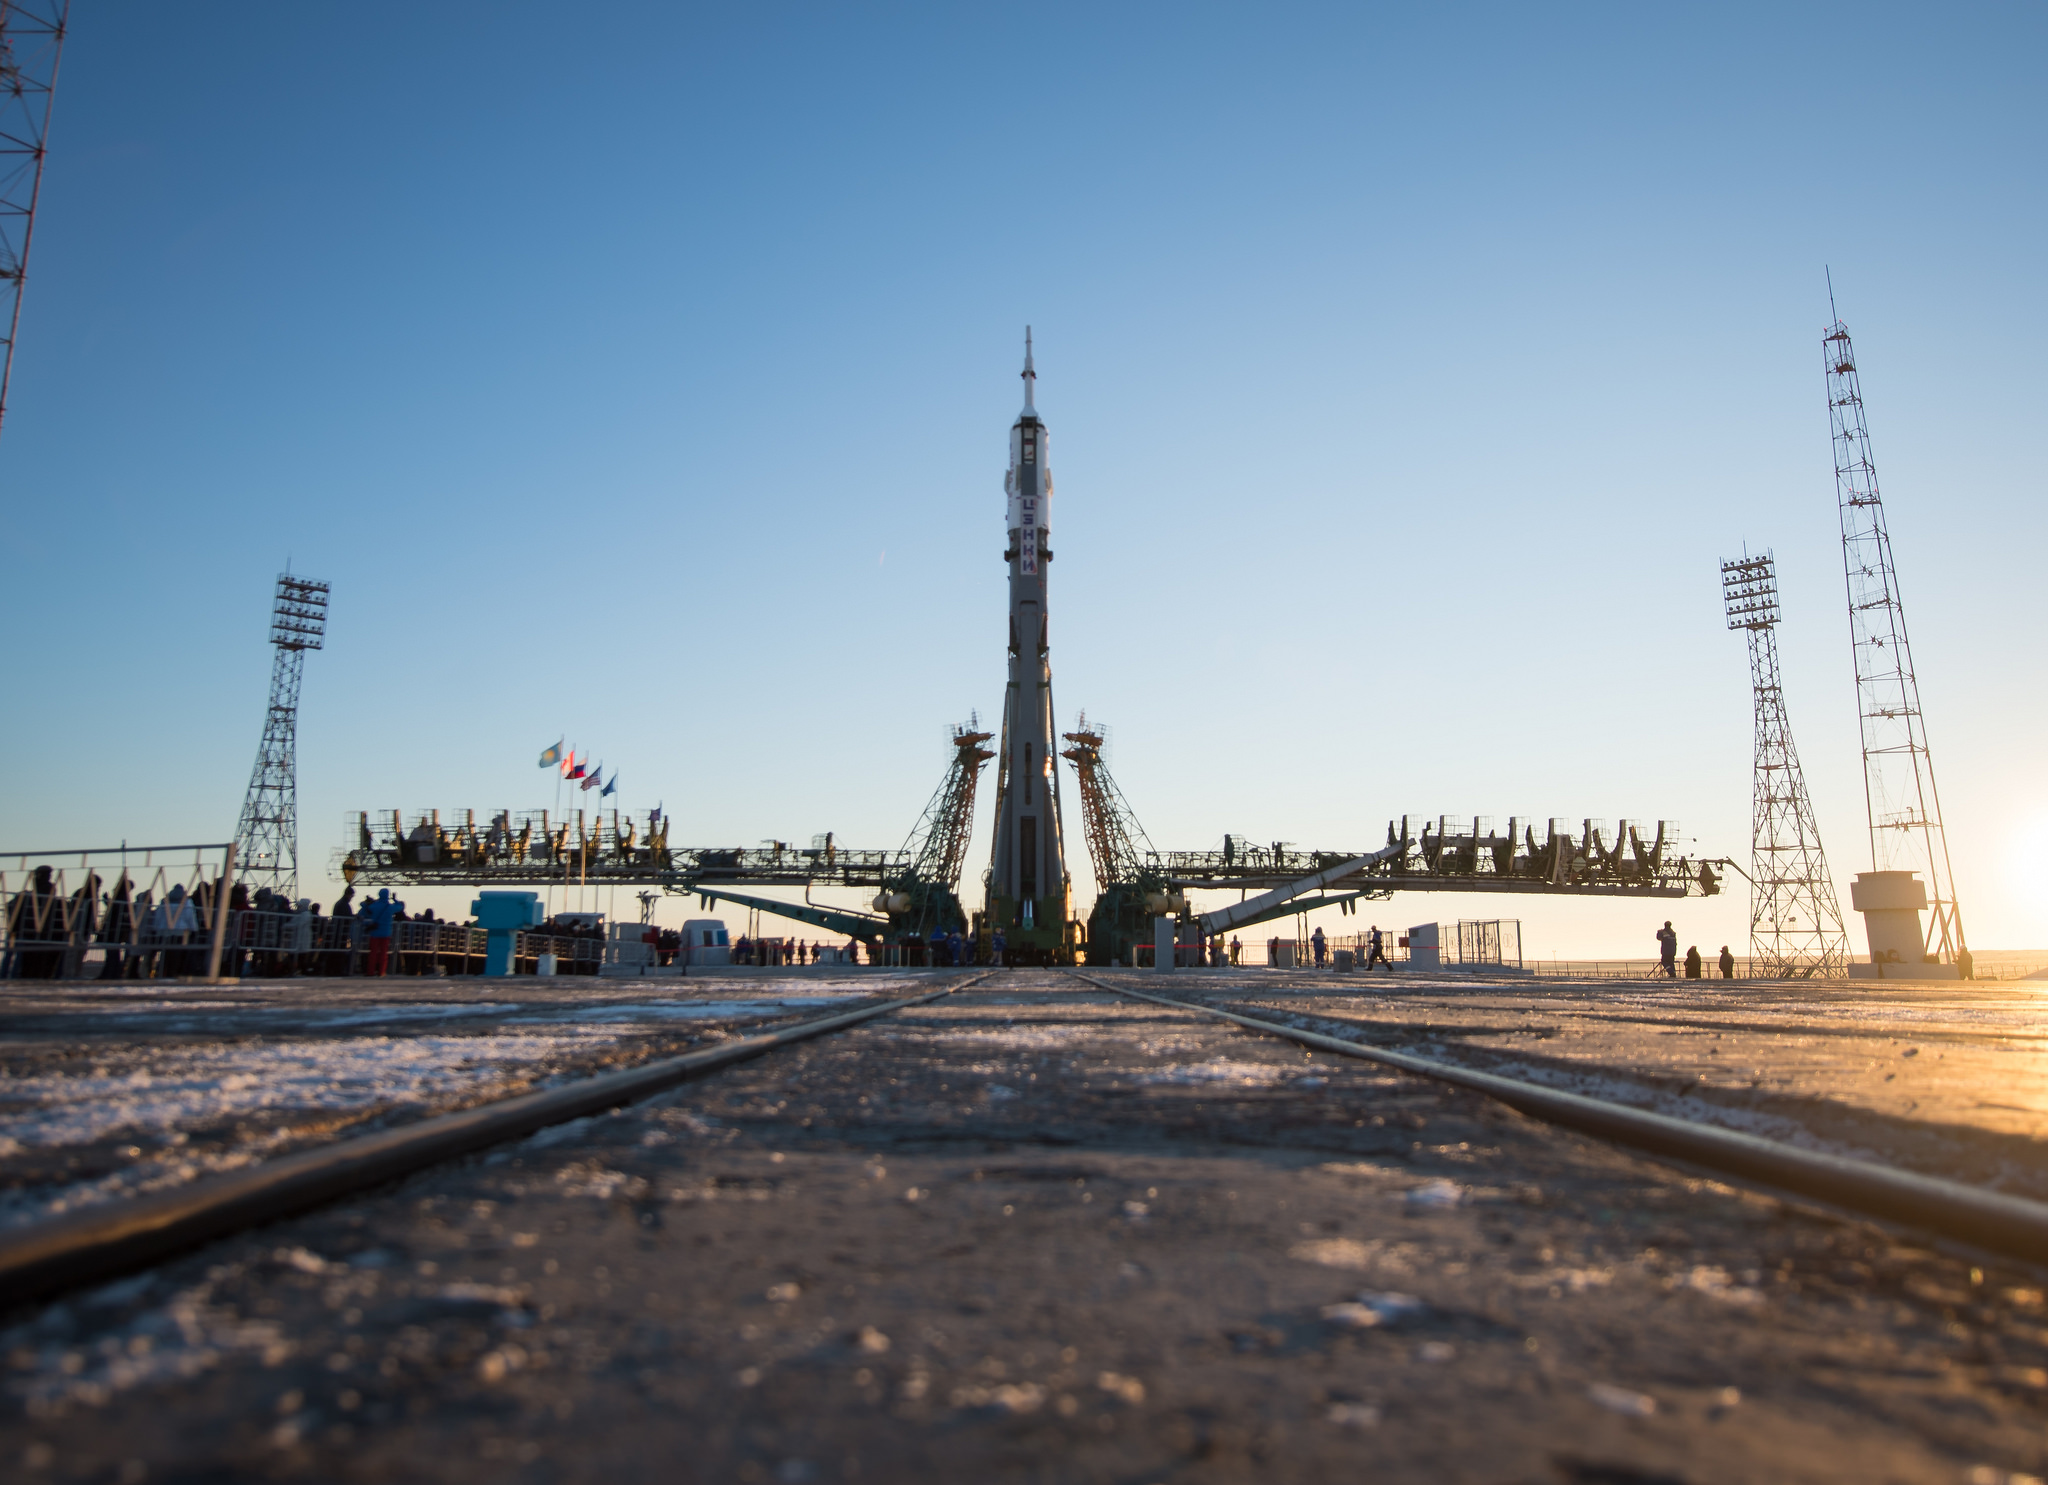 The Soyuz-FG rocket that launched Soyuz MS-11 stands at the launch pad in Baikonur Cosomdrome several days before liftoff. This was the first human launch atop a Soyuz-FG rocket following the Oct. 11, 2018, in-flight abort of Soyuz MS-10. Credit: NASA/Aubrey Gemignani